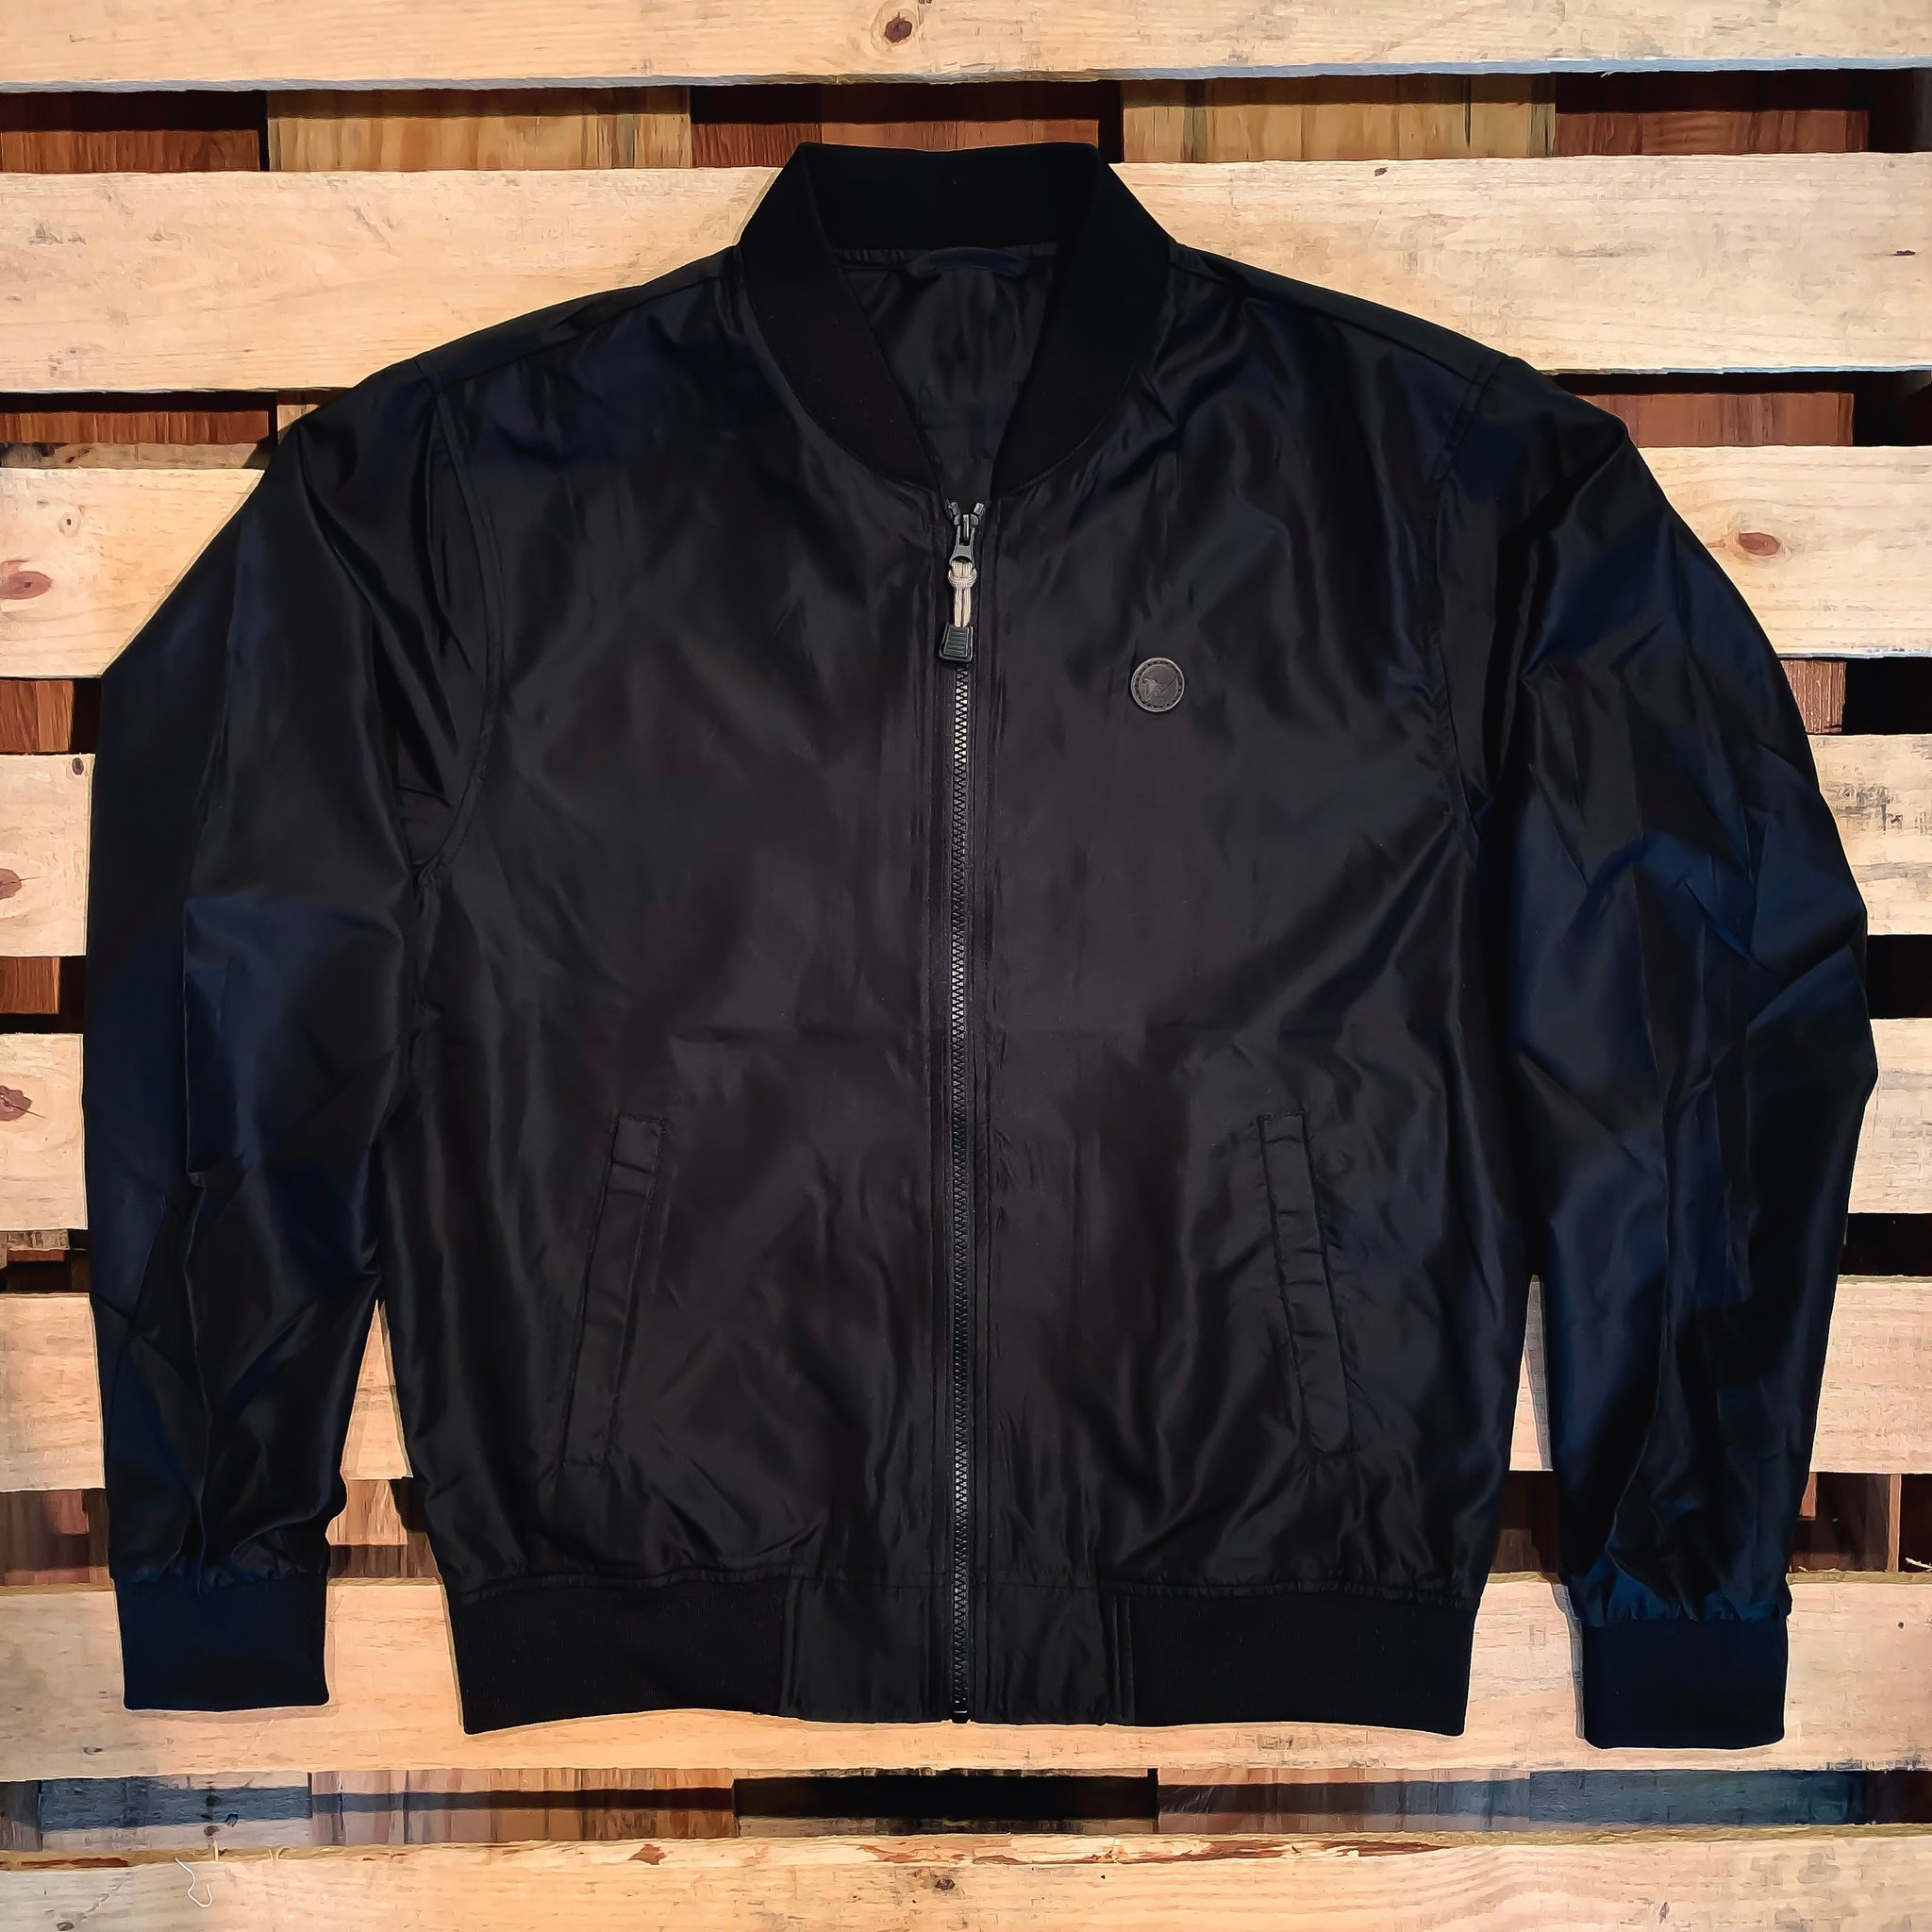 In the Clutch *Lightweight Bomber Jacket (Black) - Beauty Status Hockey Co.